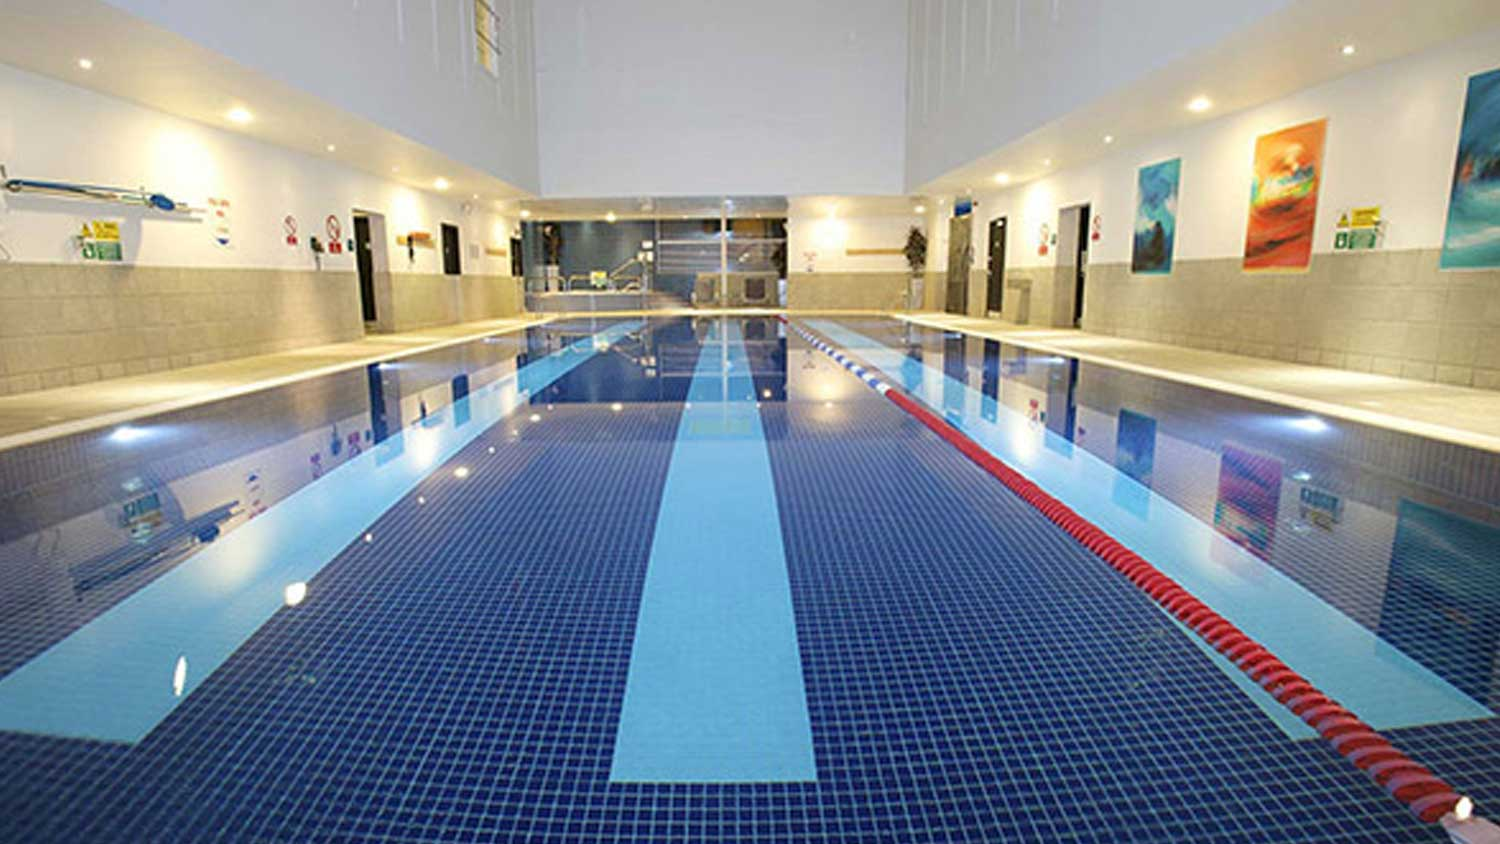 Gym in harrogate fitness wellbeing nuffield health - Brooklyn college swimming pool membership ...